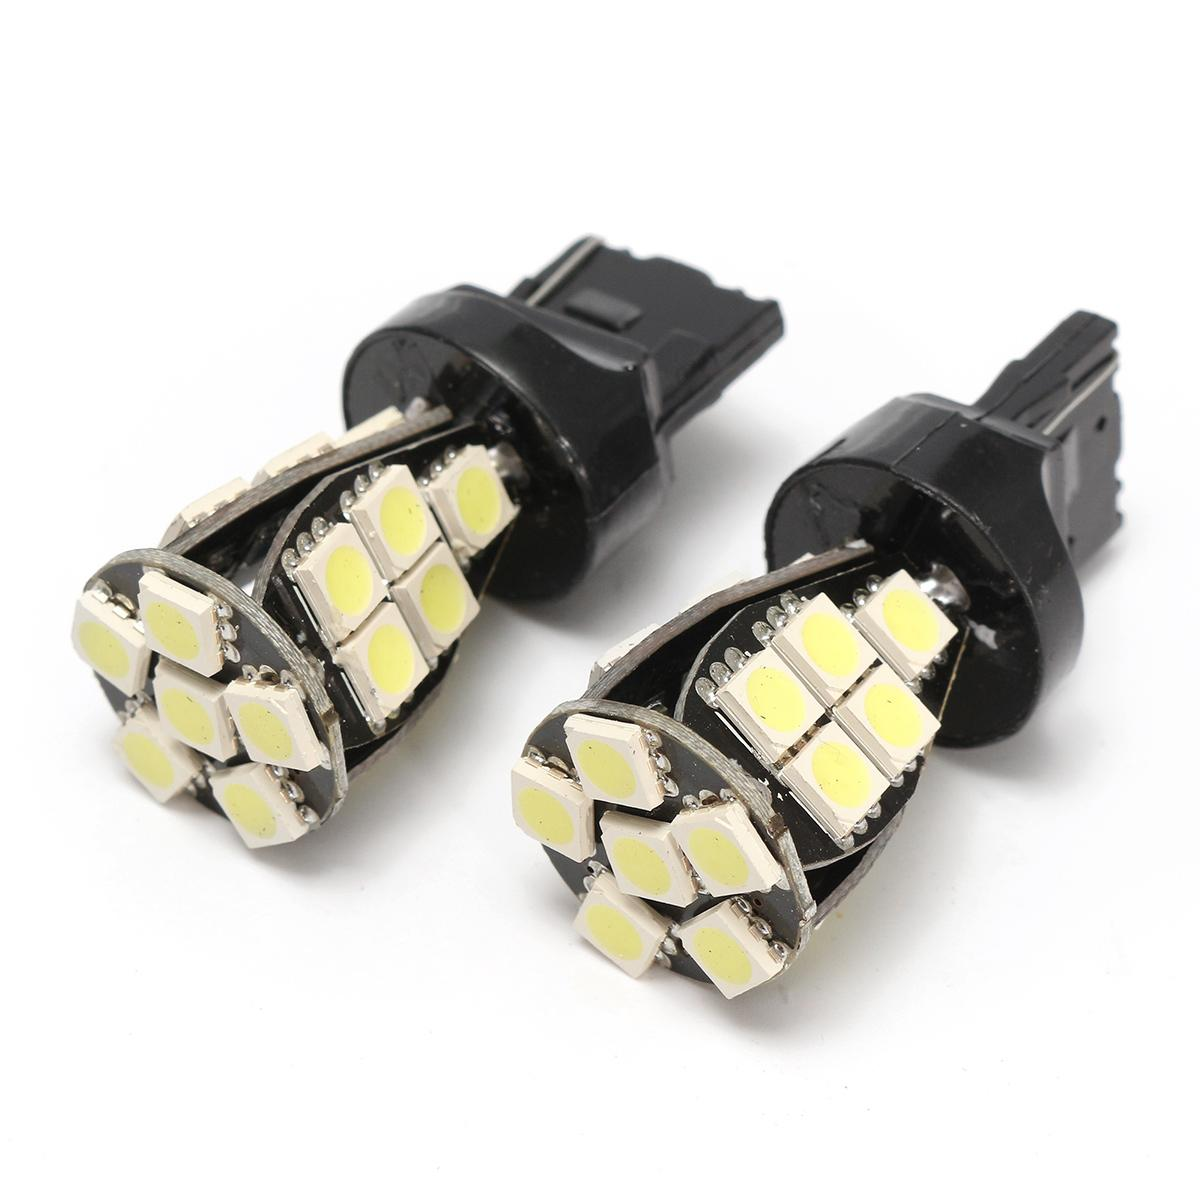 Pair <font><b>T20</b></font> <font><b>W21</b></font>/<font><b>5W</b></font> 7440 LED DRL Sidelight Bulbs Stop Parking Lamps License Plate Light CANBUS NO ERROR image